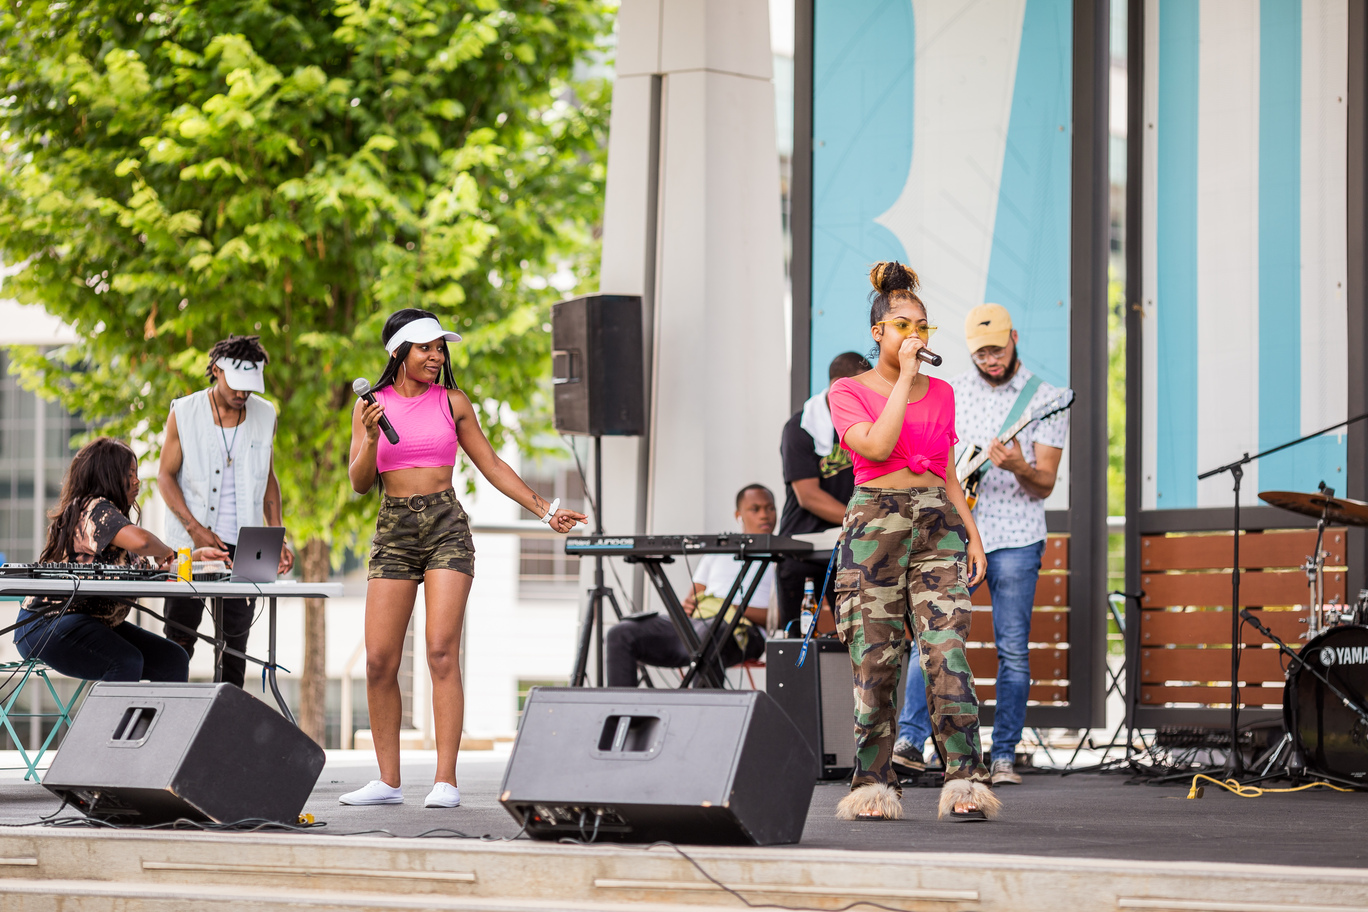 Two women sing music on stage at Bailey Park during Food Truck Friday.